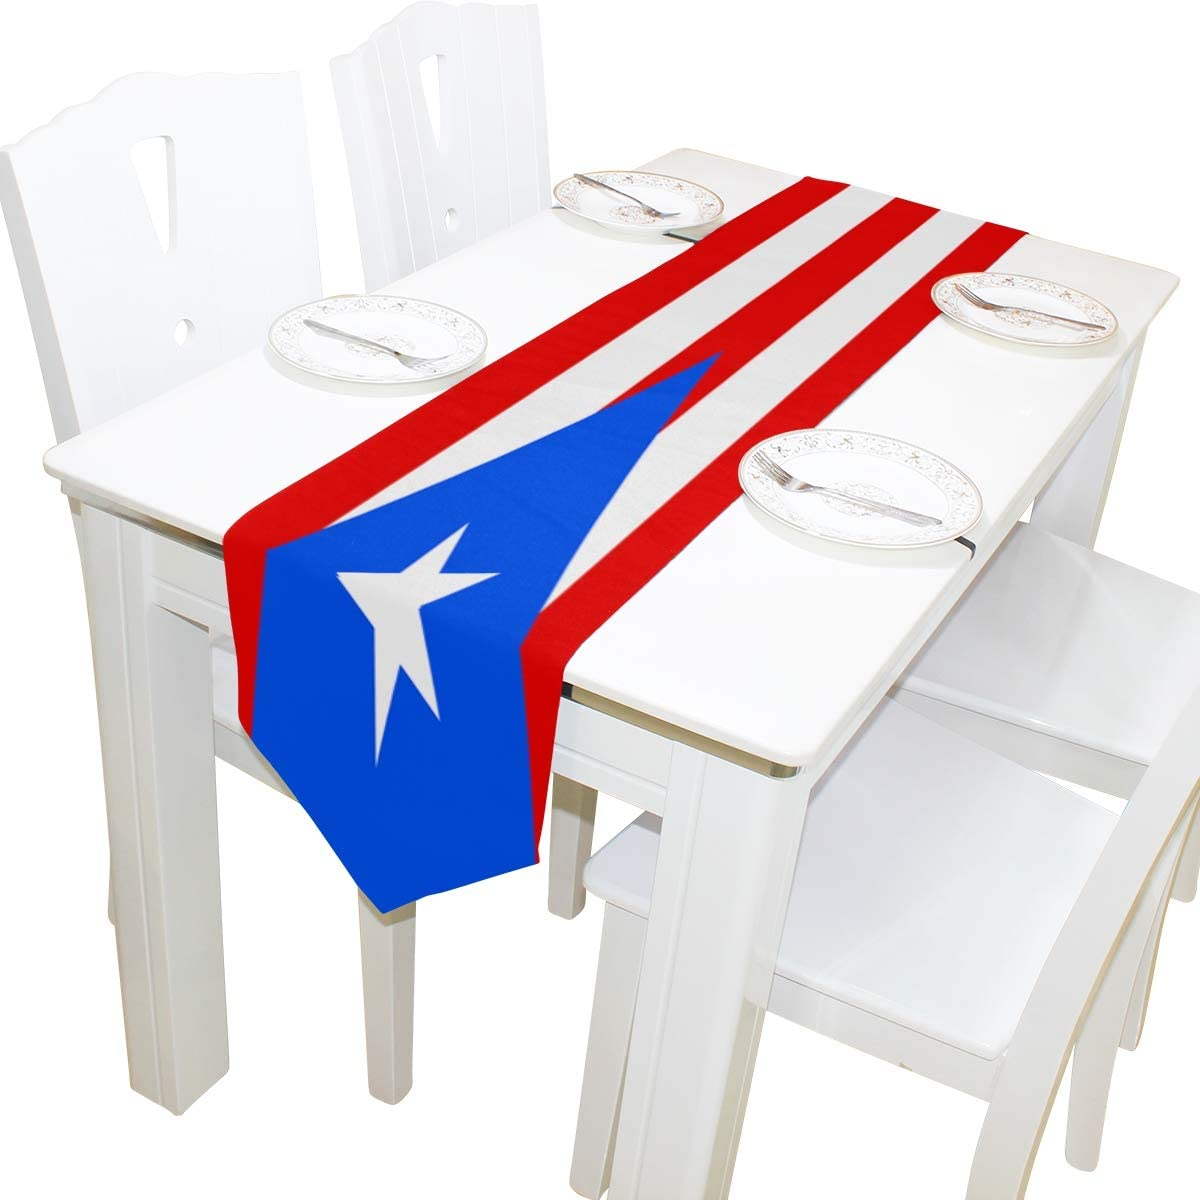 poeticcity Puerto Rico Flag Double Sided Oblong 13 X 90 inches Table Runner for Wedding Dining Room Kitchen Table Cloth Home Decor